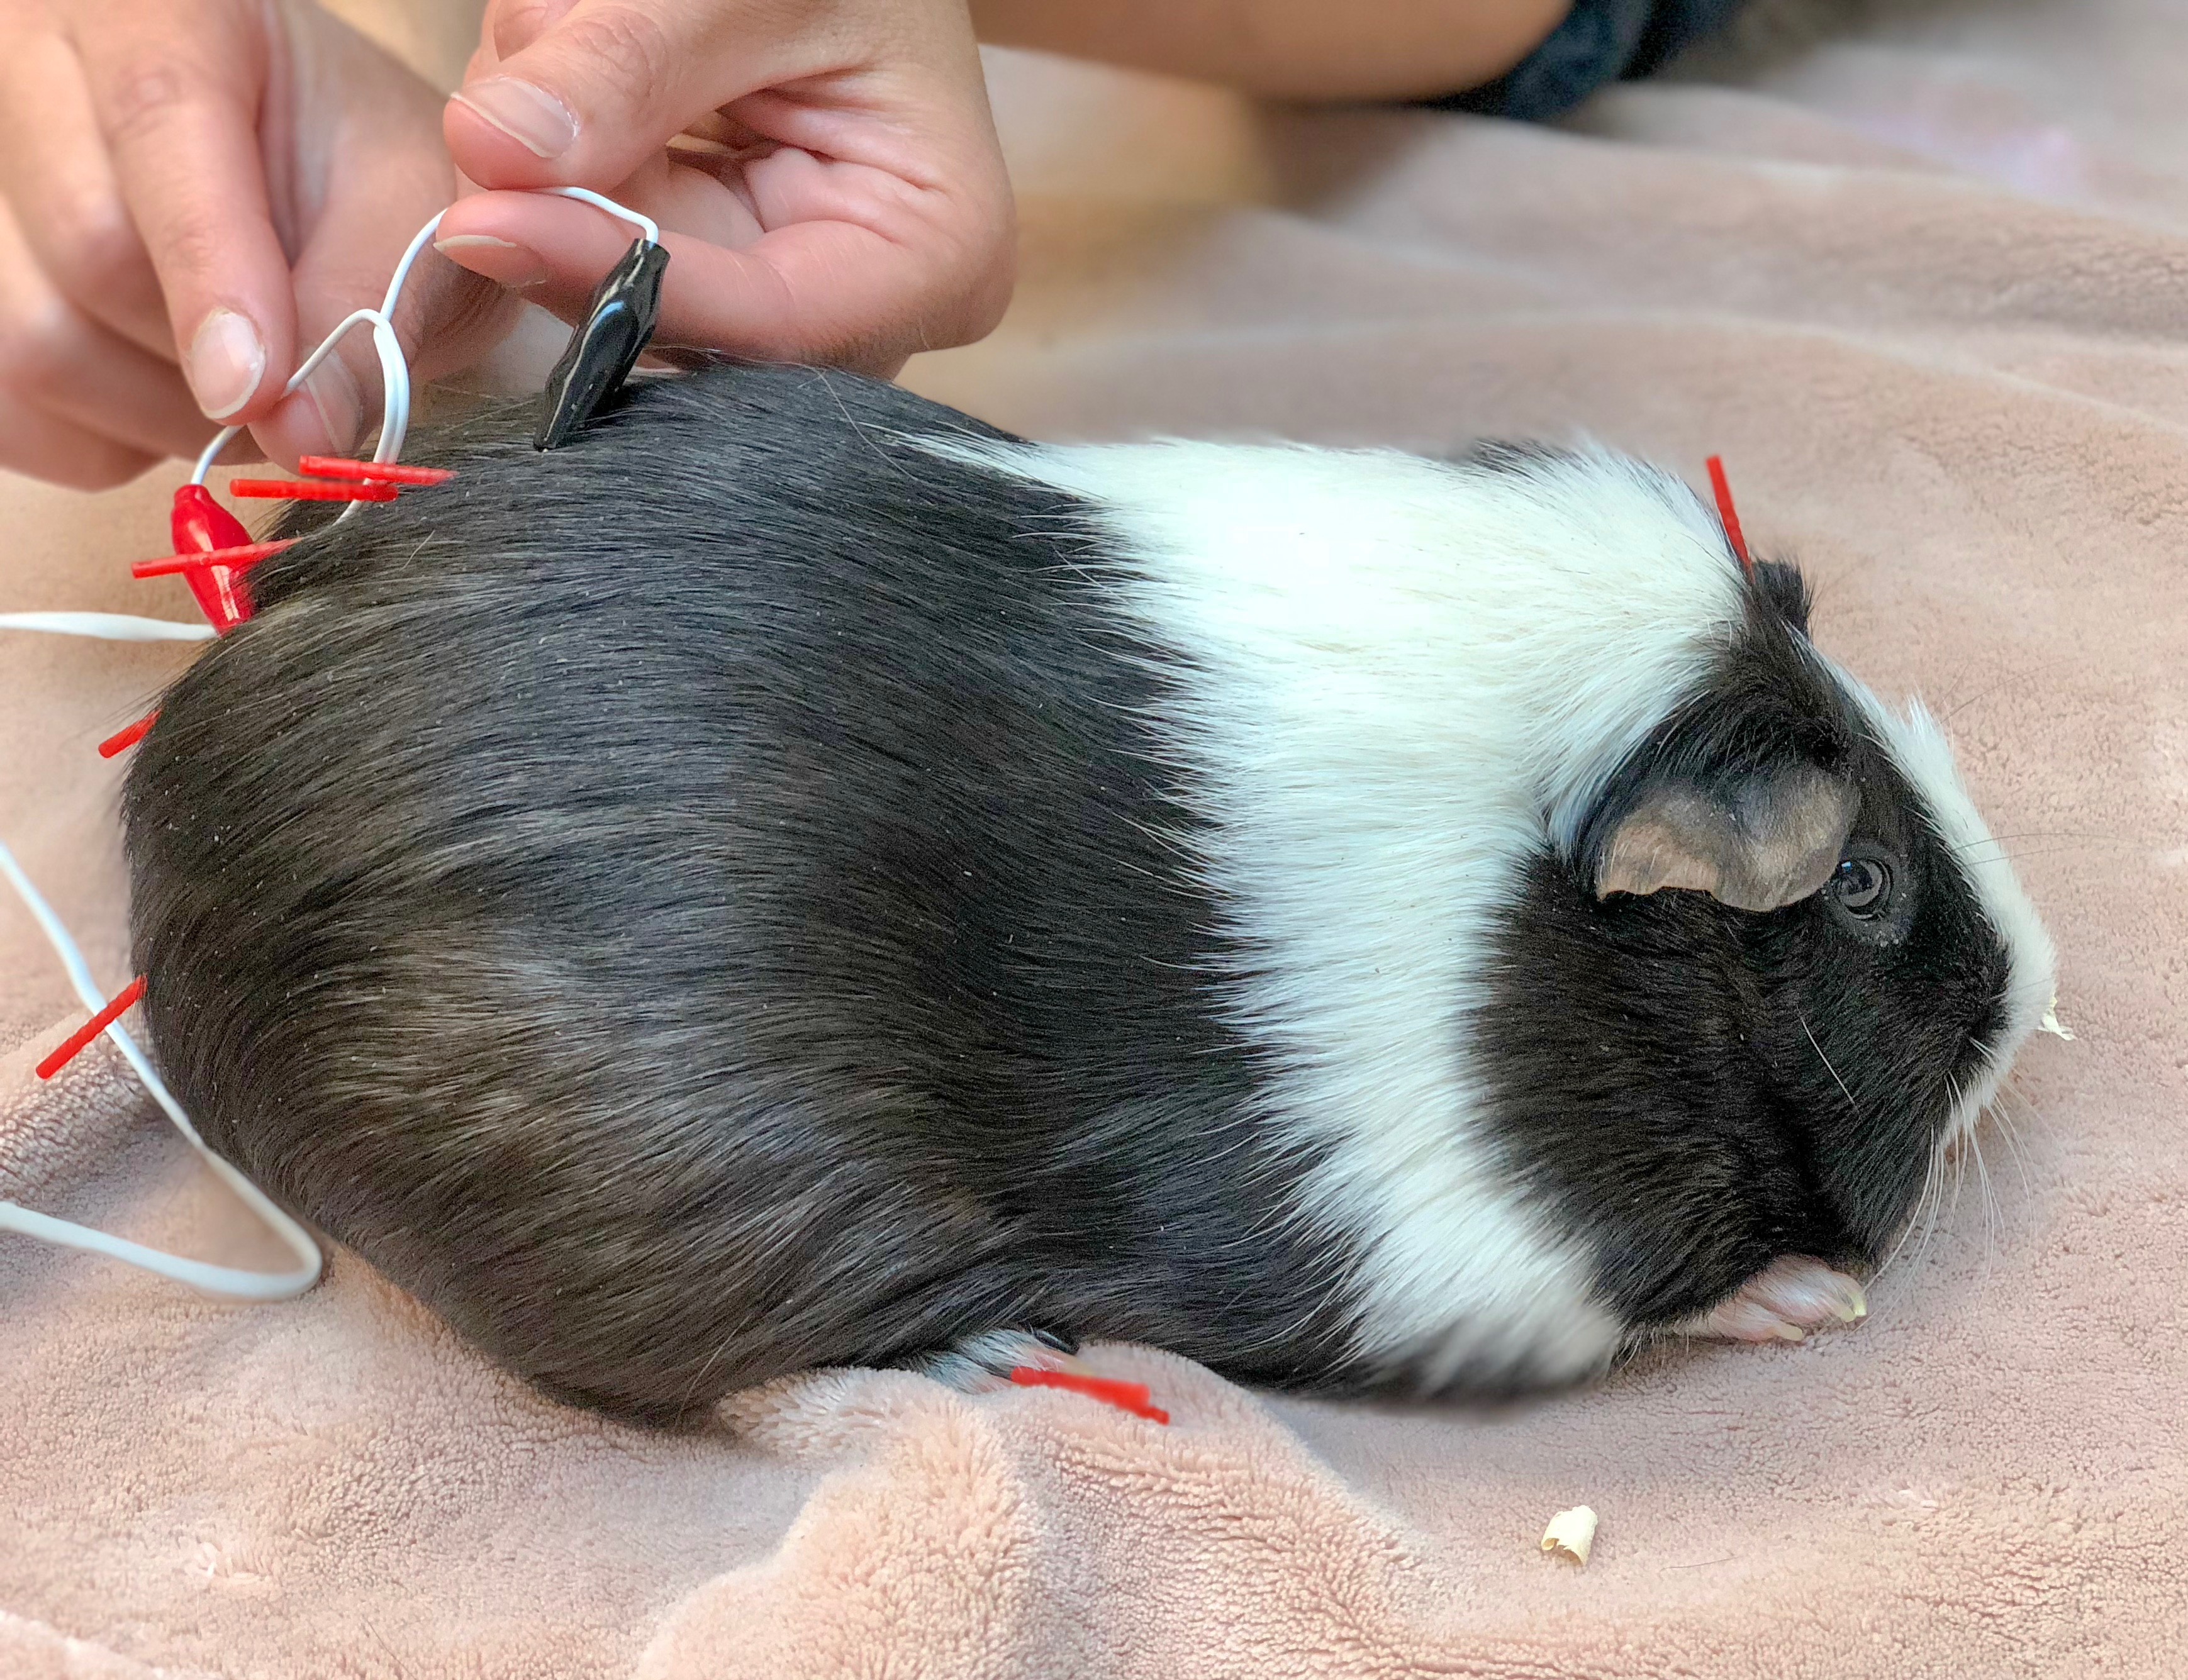 Paraplegia and Bladder Dysfunction in a Guinea Pig